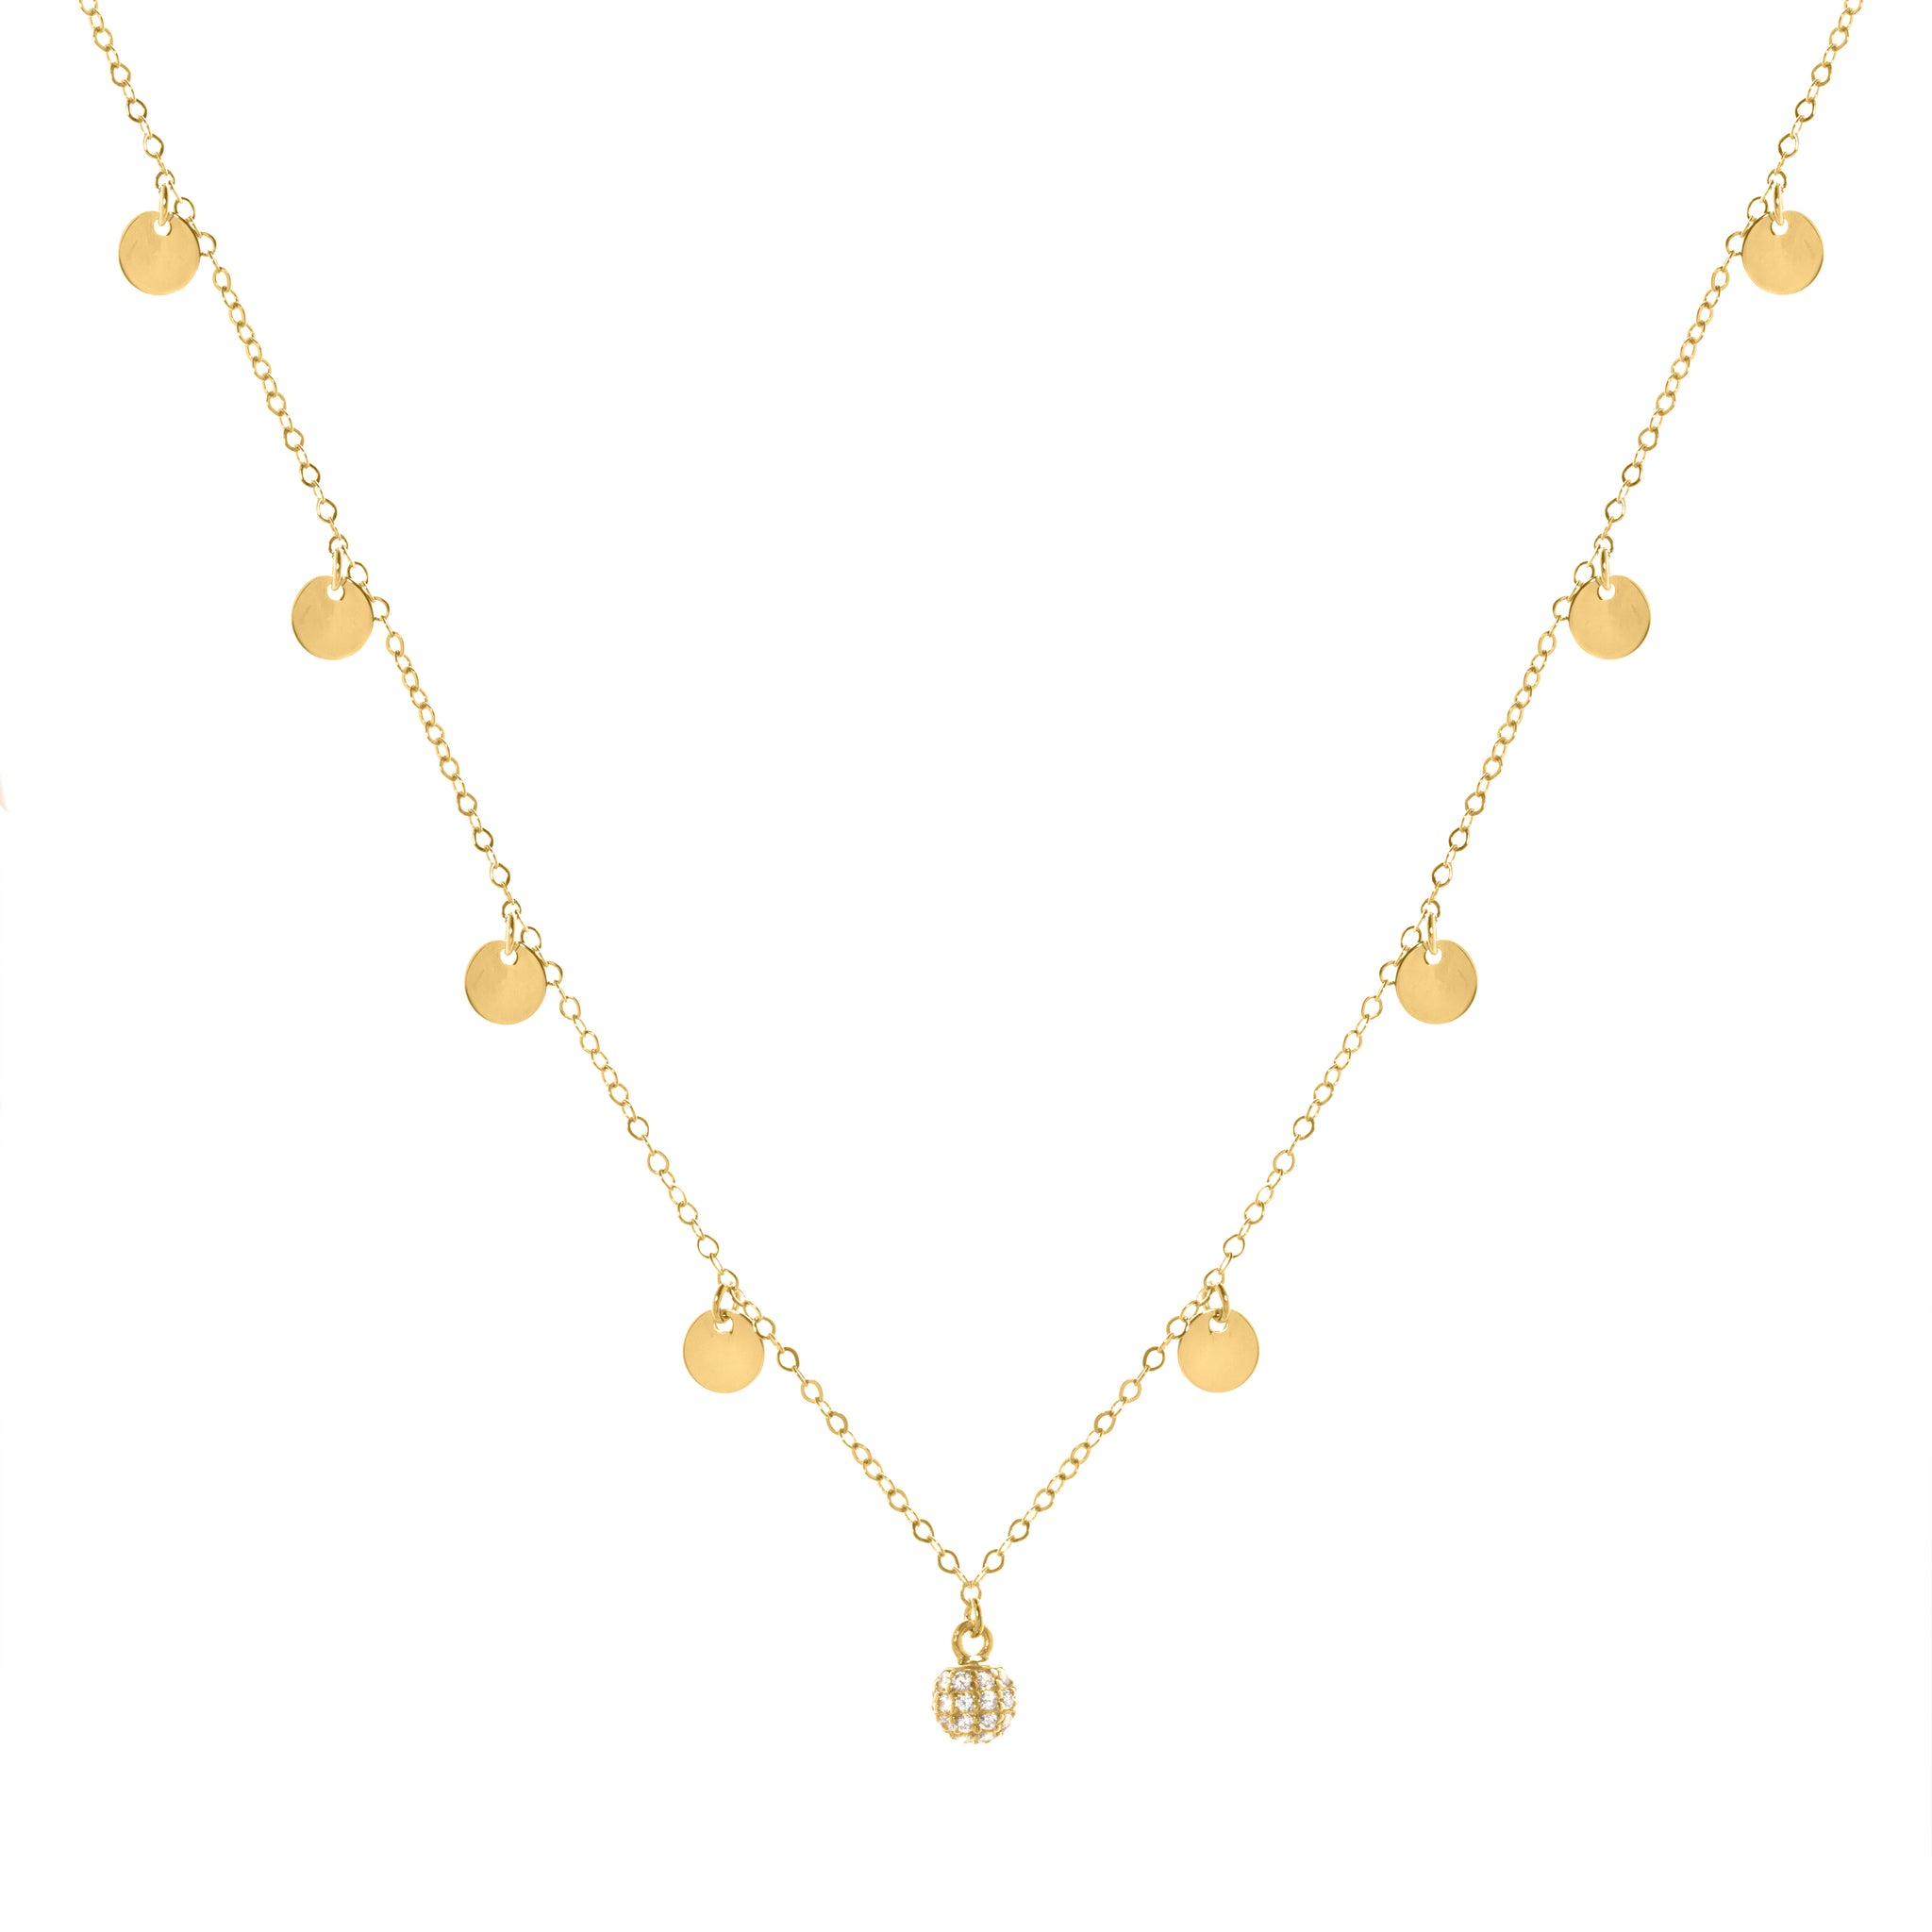 Barbara gold necklace